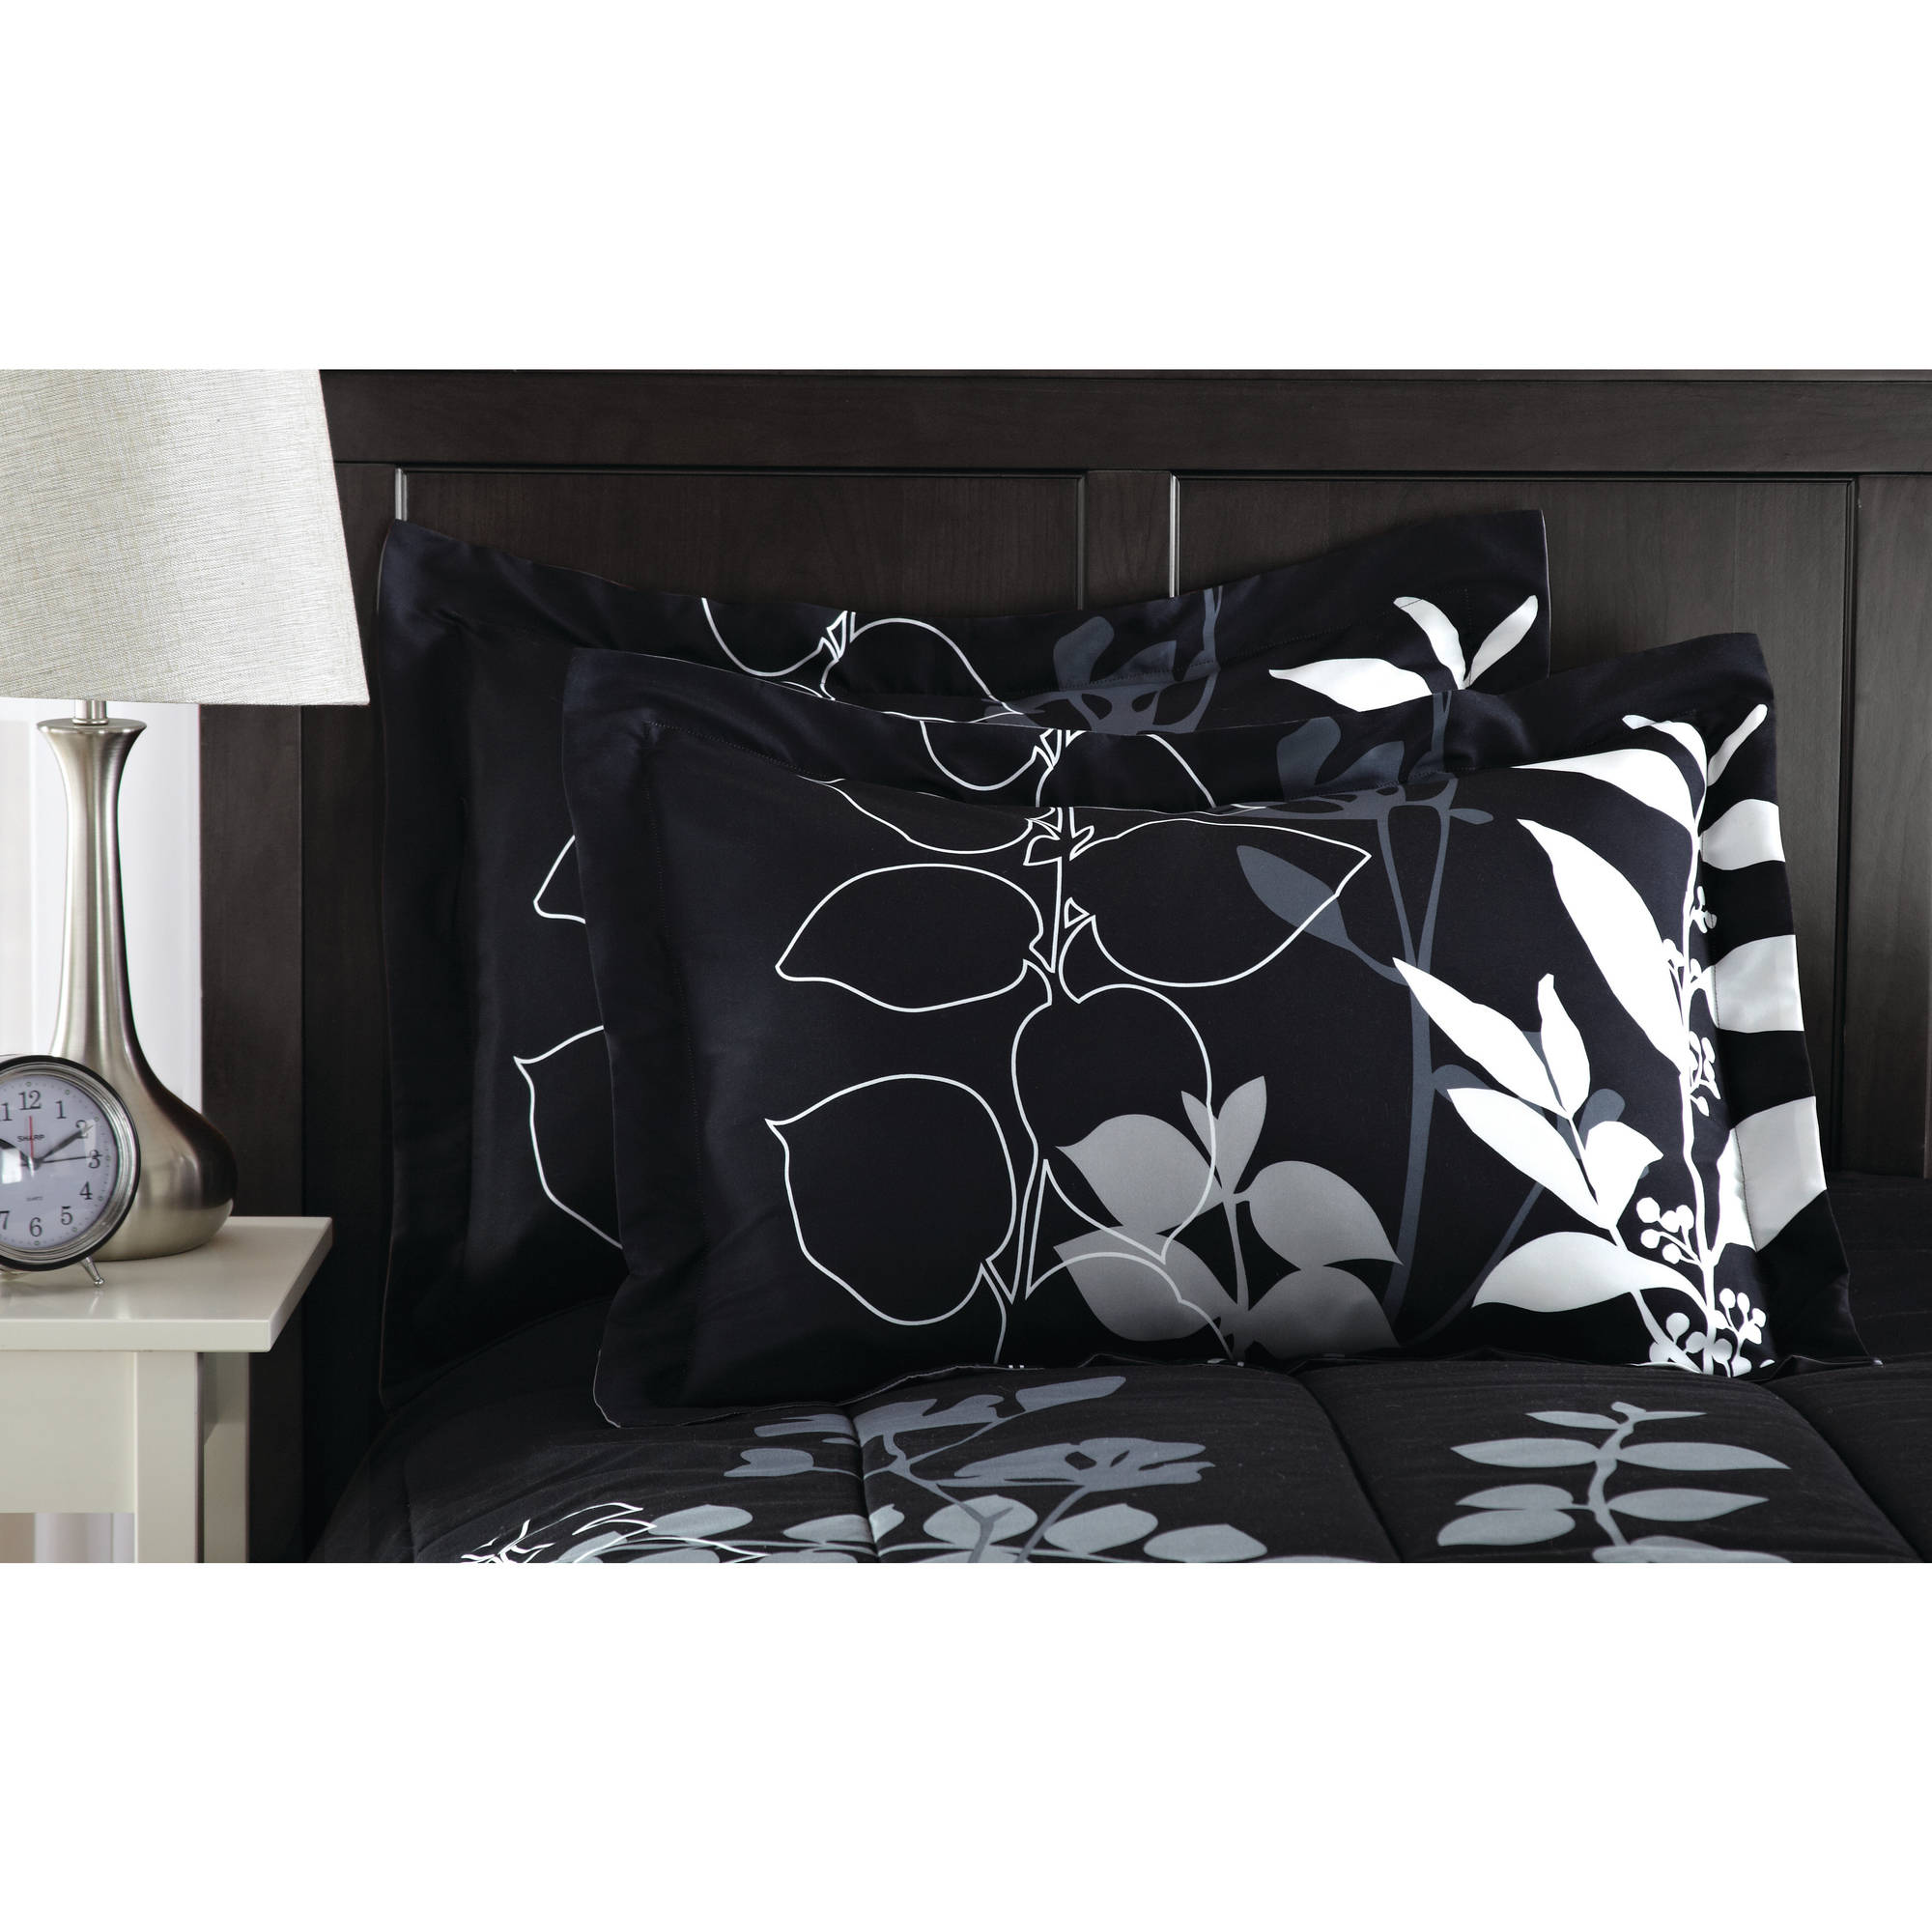 Mainstays Orkasi Bed in a Bag Coordinated Bedding Set Walmart